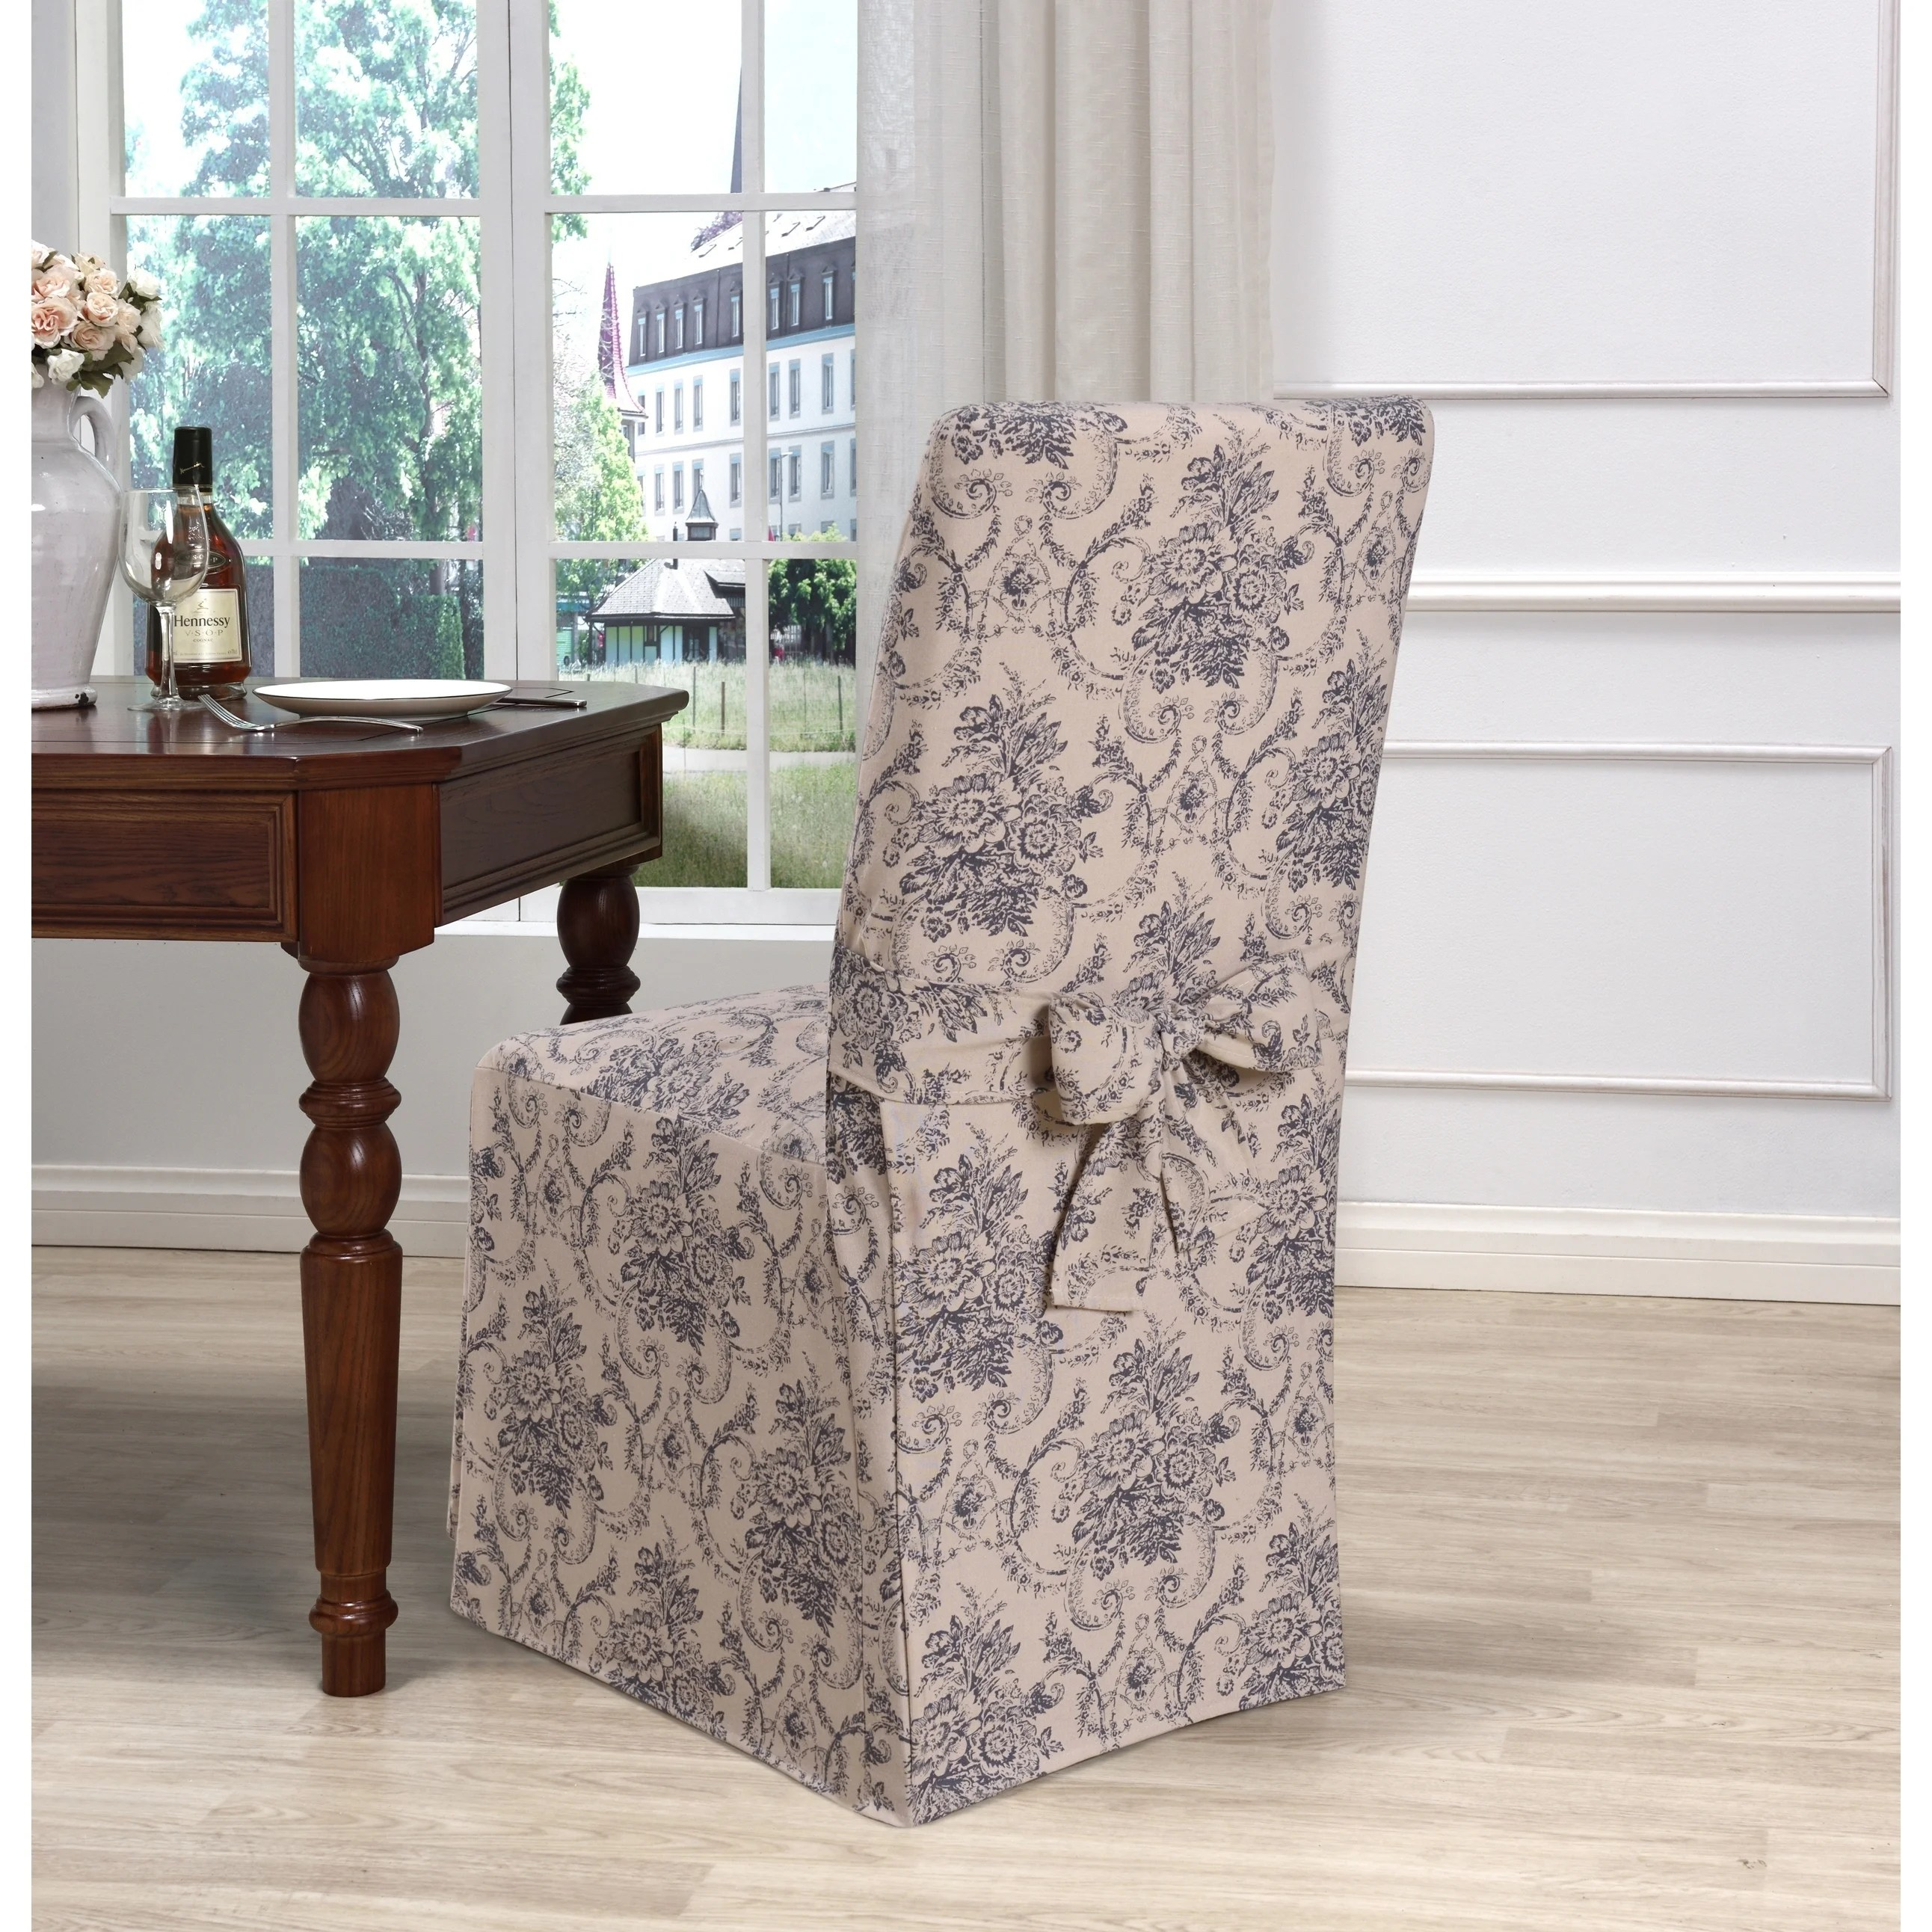 Quilted Lounge Chair Covers Kathy Ireland Chateau Dining Chair Cover